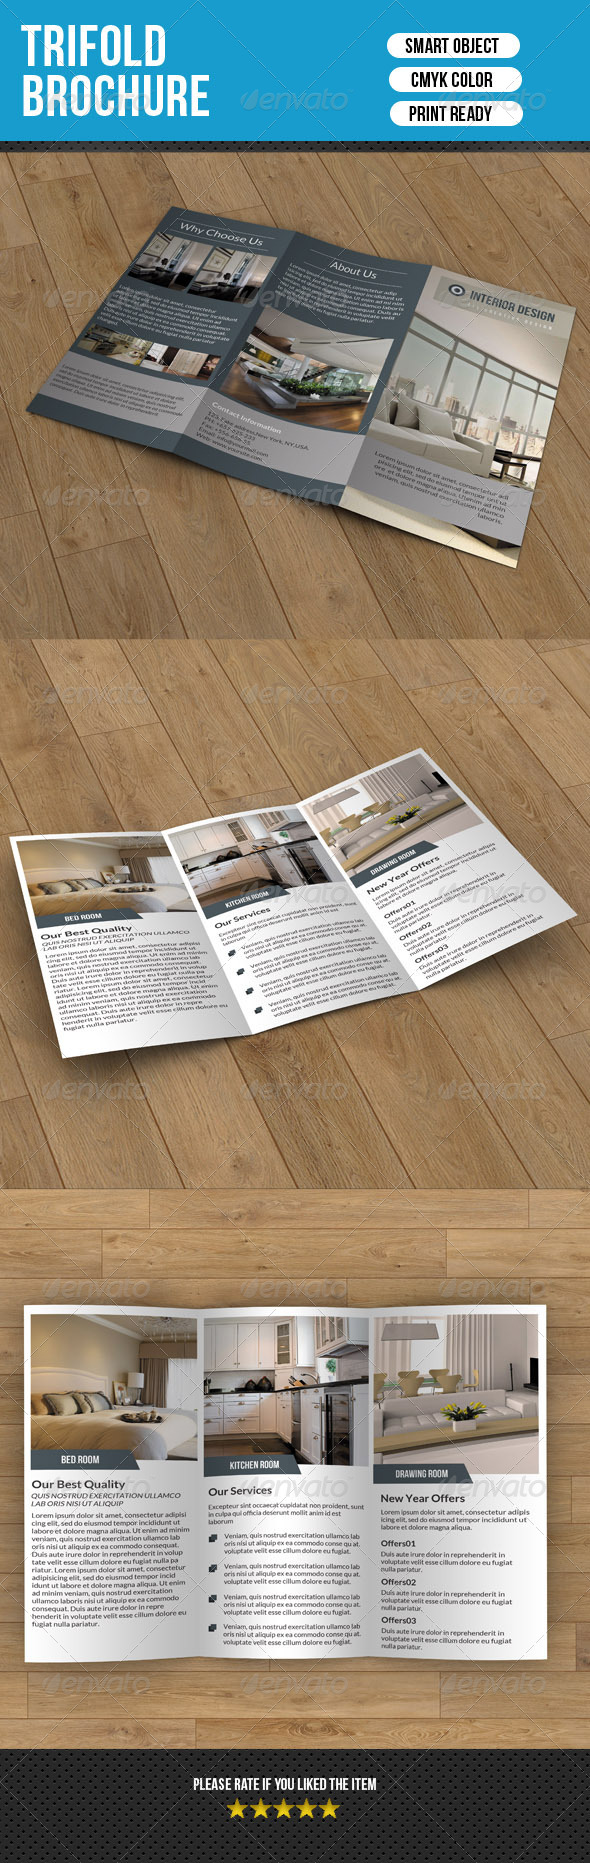 Minimal Trifold-Interior Design V3 - Corporate Brochures